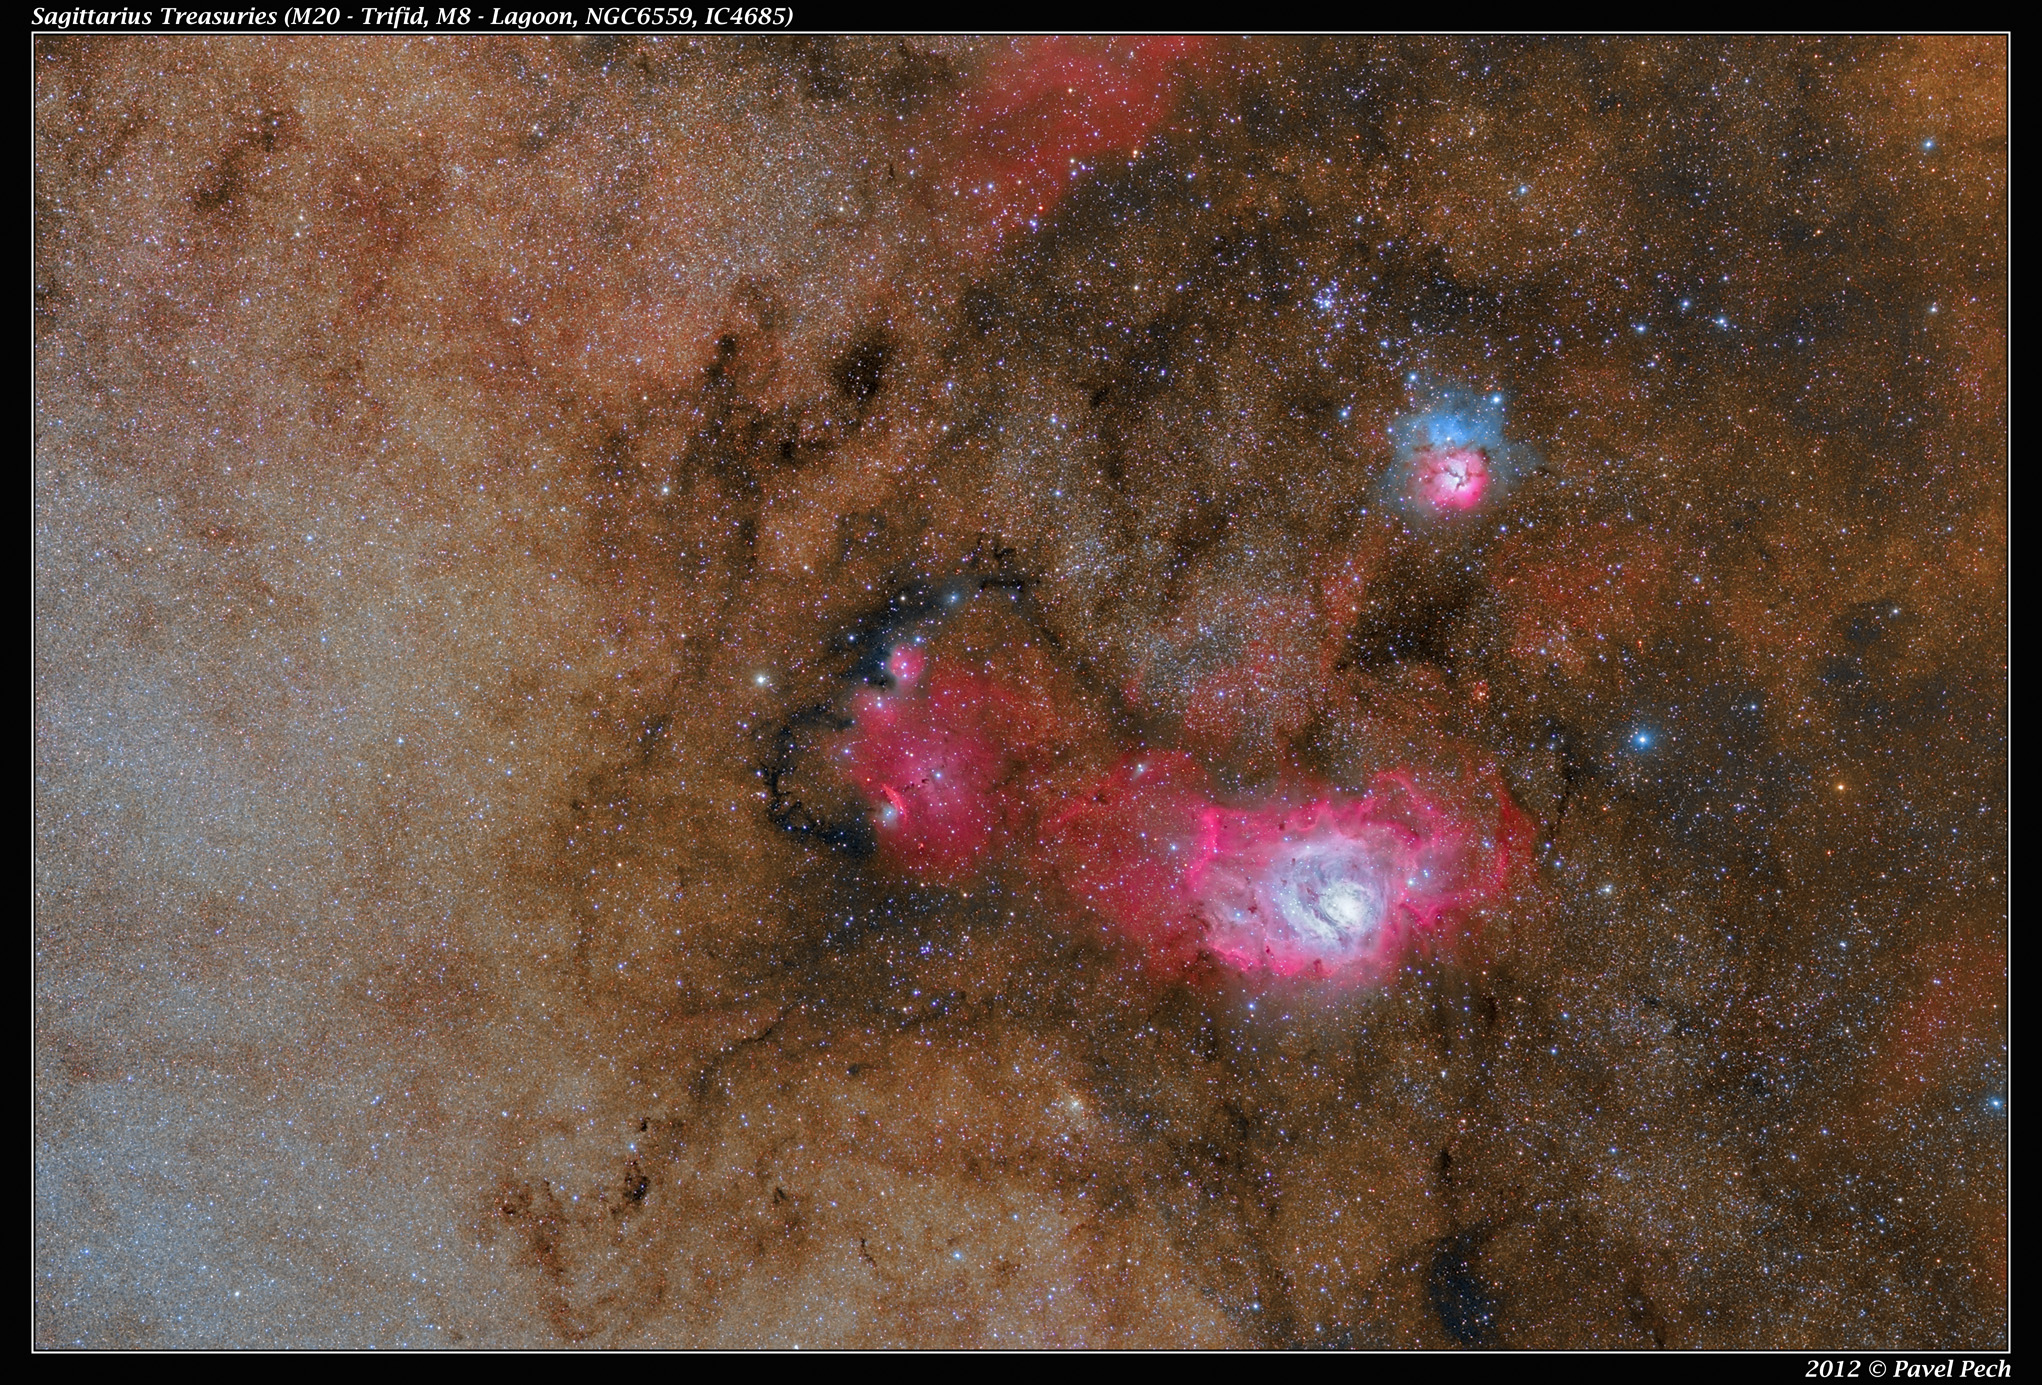 Sagittarius Treasuries (M20, M8, NGC6559, IC4685) sLRGBHa